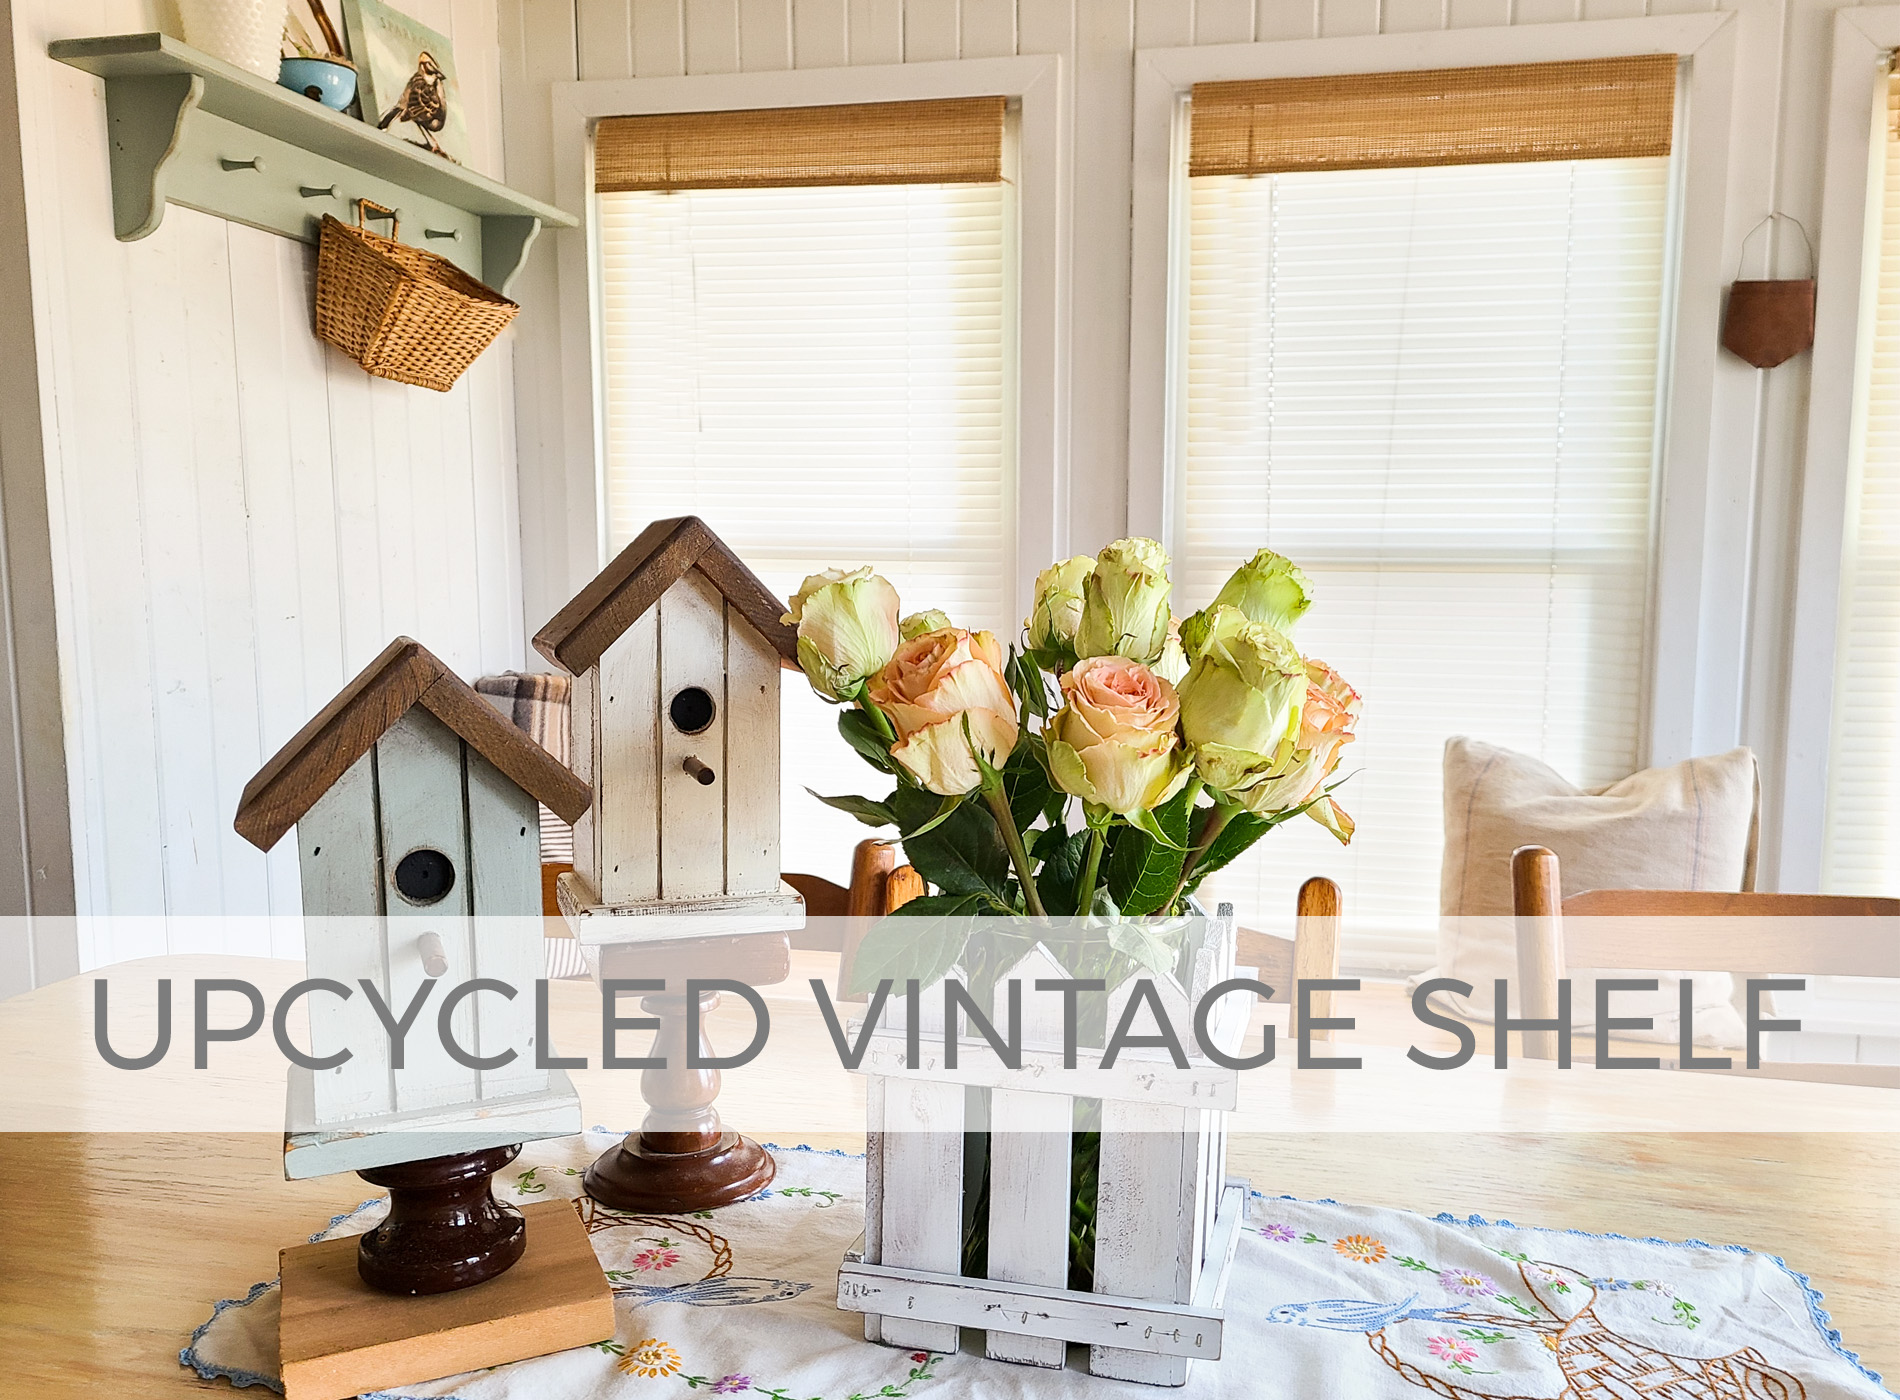 Upcycled Vintage Shelf into 4 Home Decor Projects by Larissa of Prodigal Pieces | prodigalpieces.com #prodigalpieces